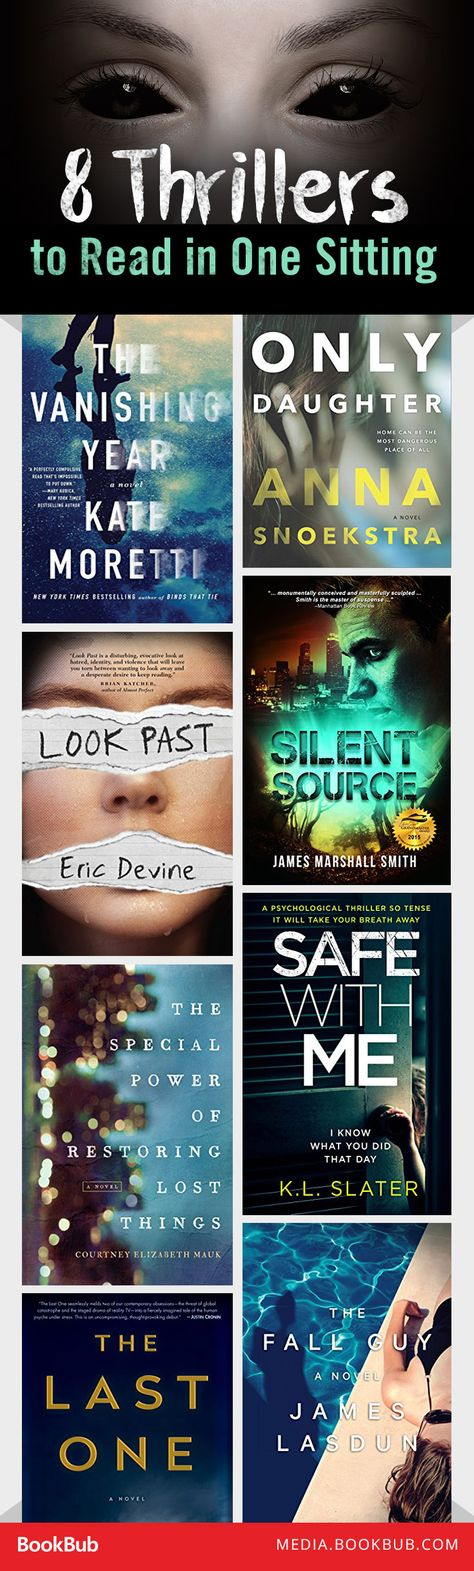 8 Thrillers to Read in One Sitting